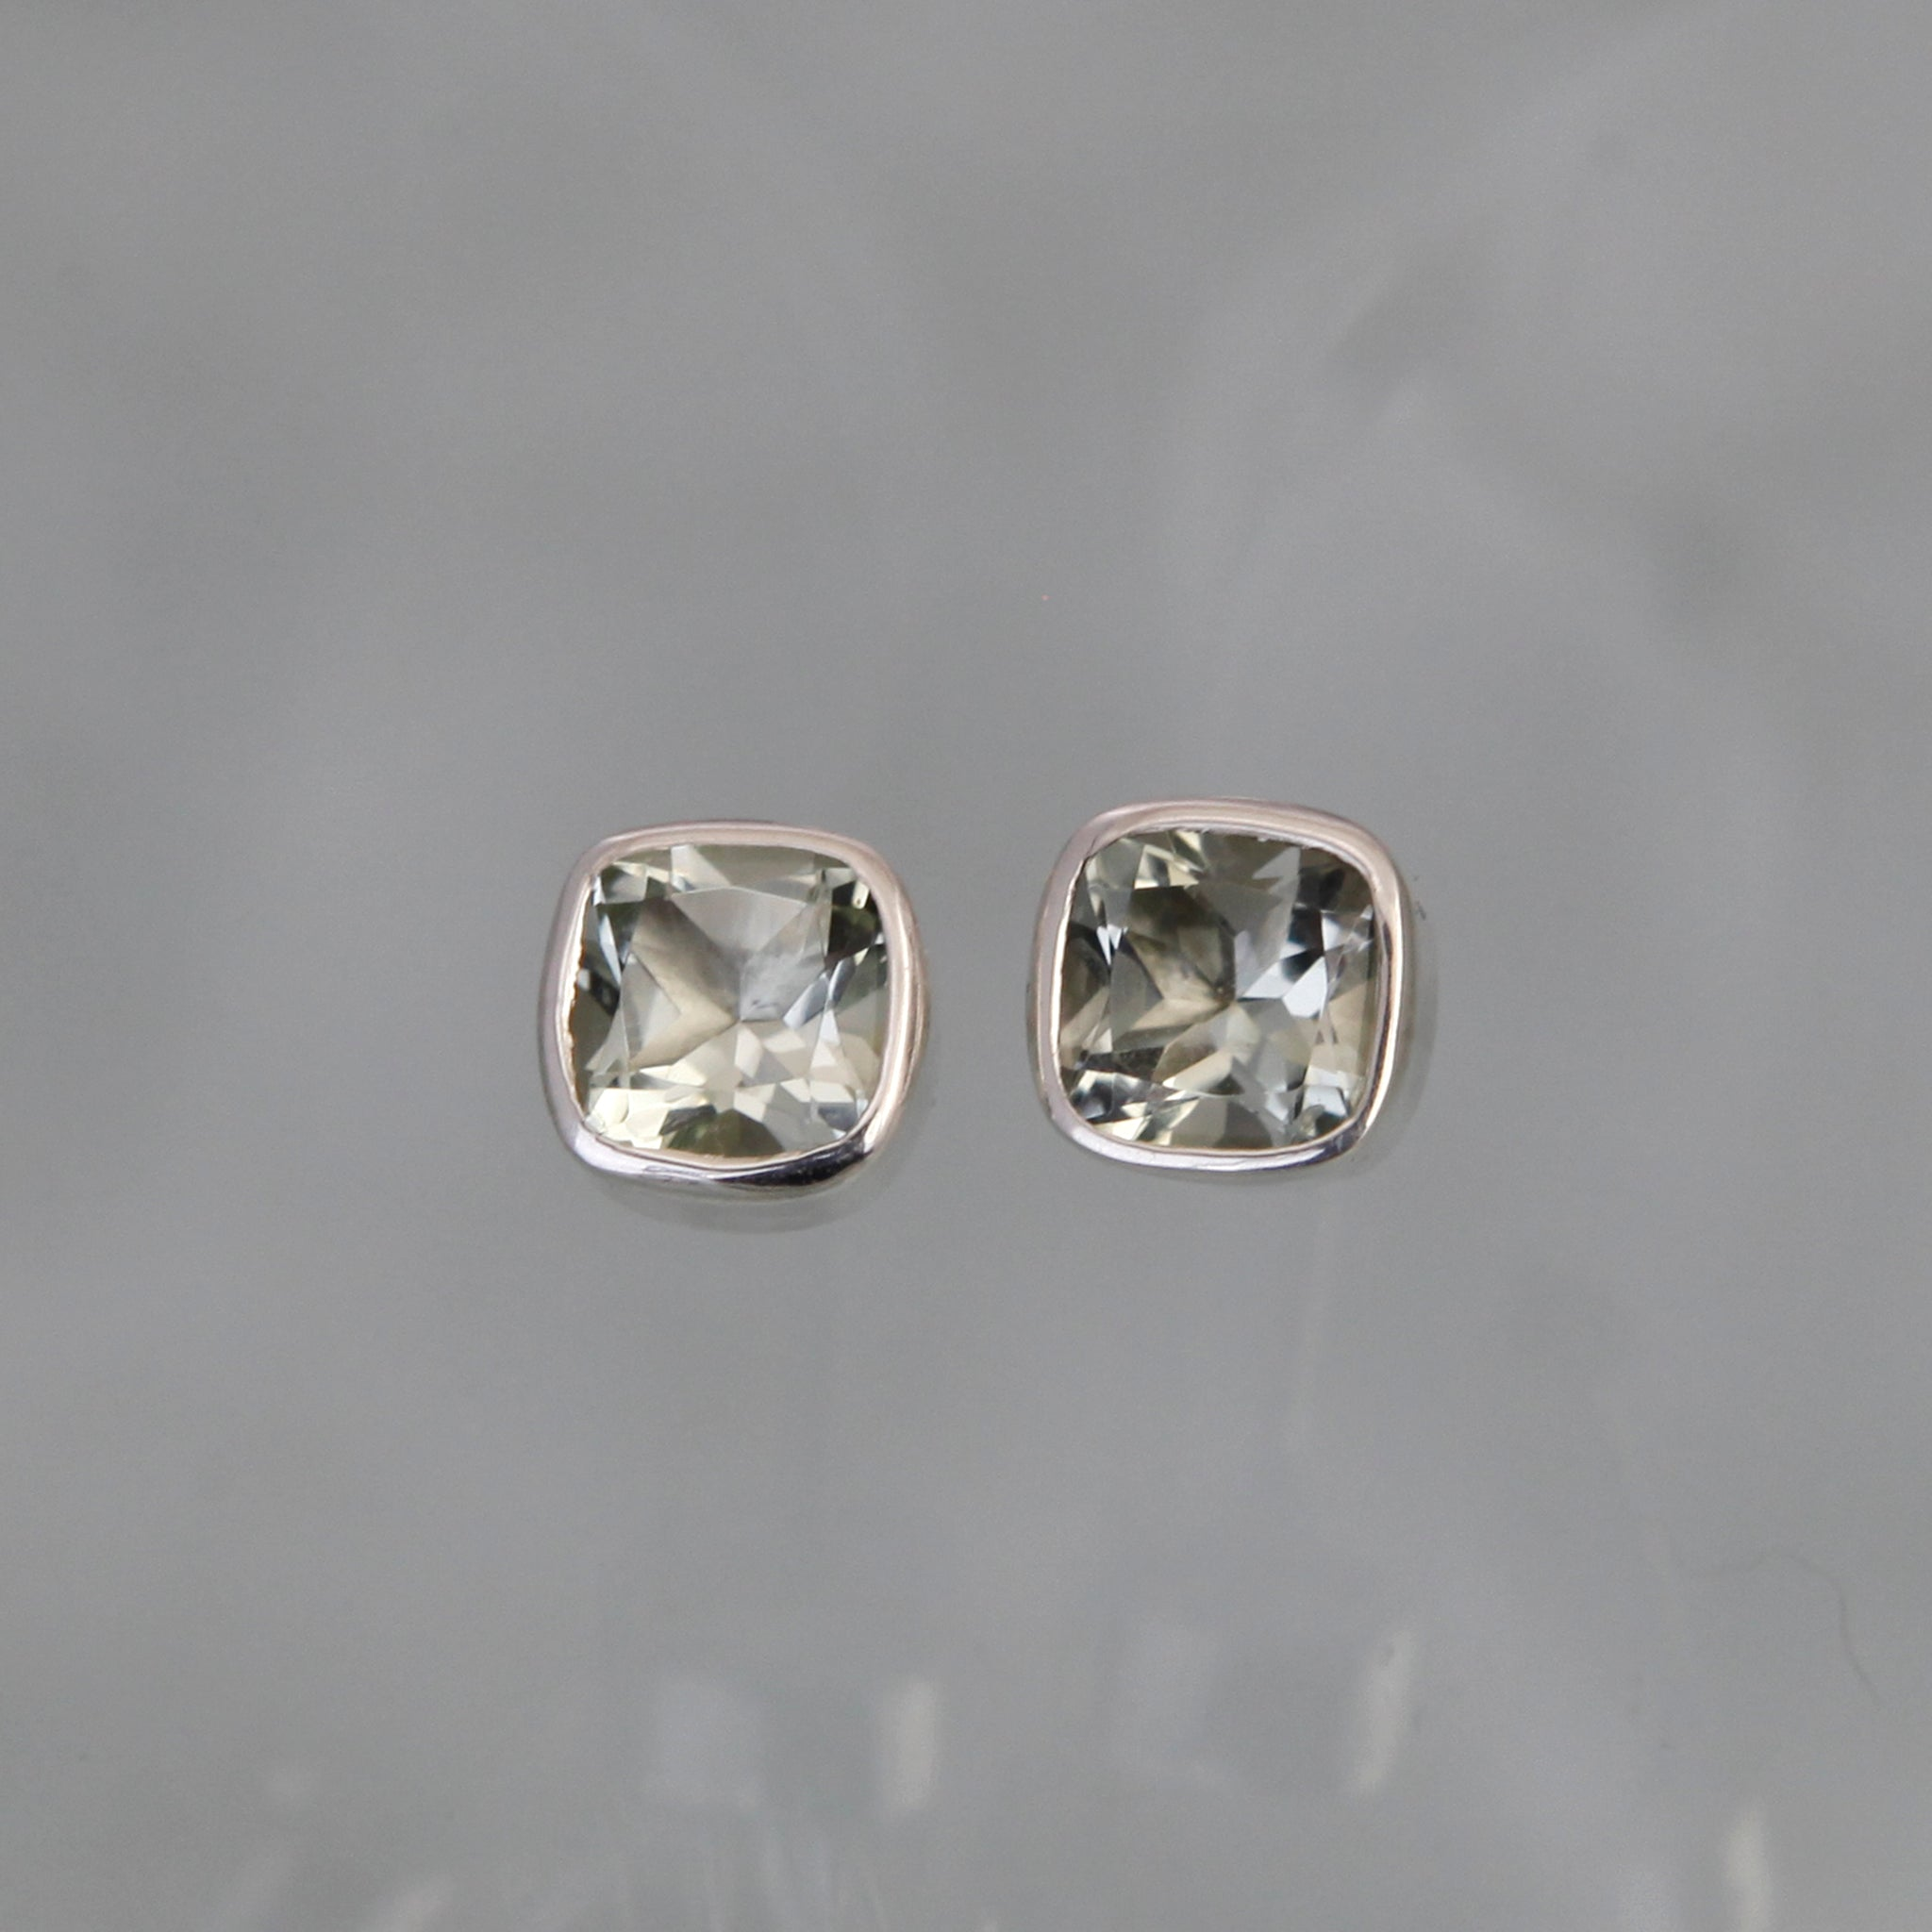 White Topaz and Silver Gem Squared Stud Earrings